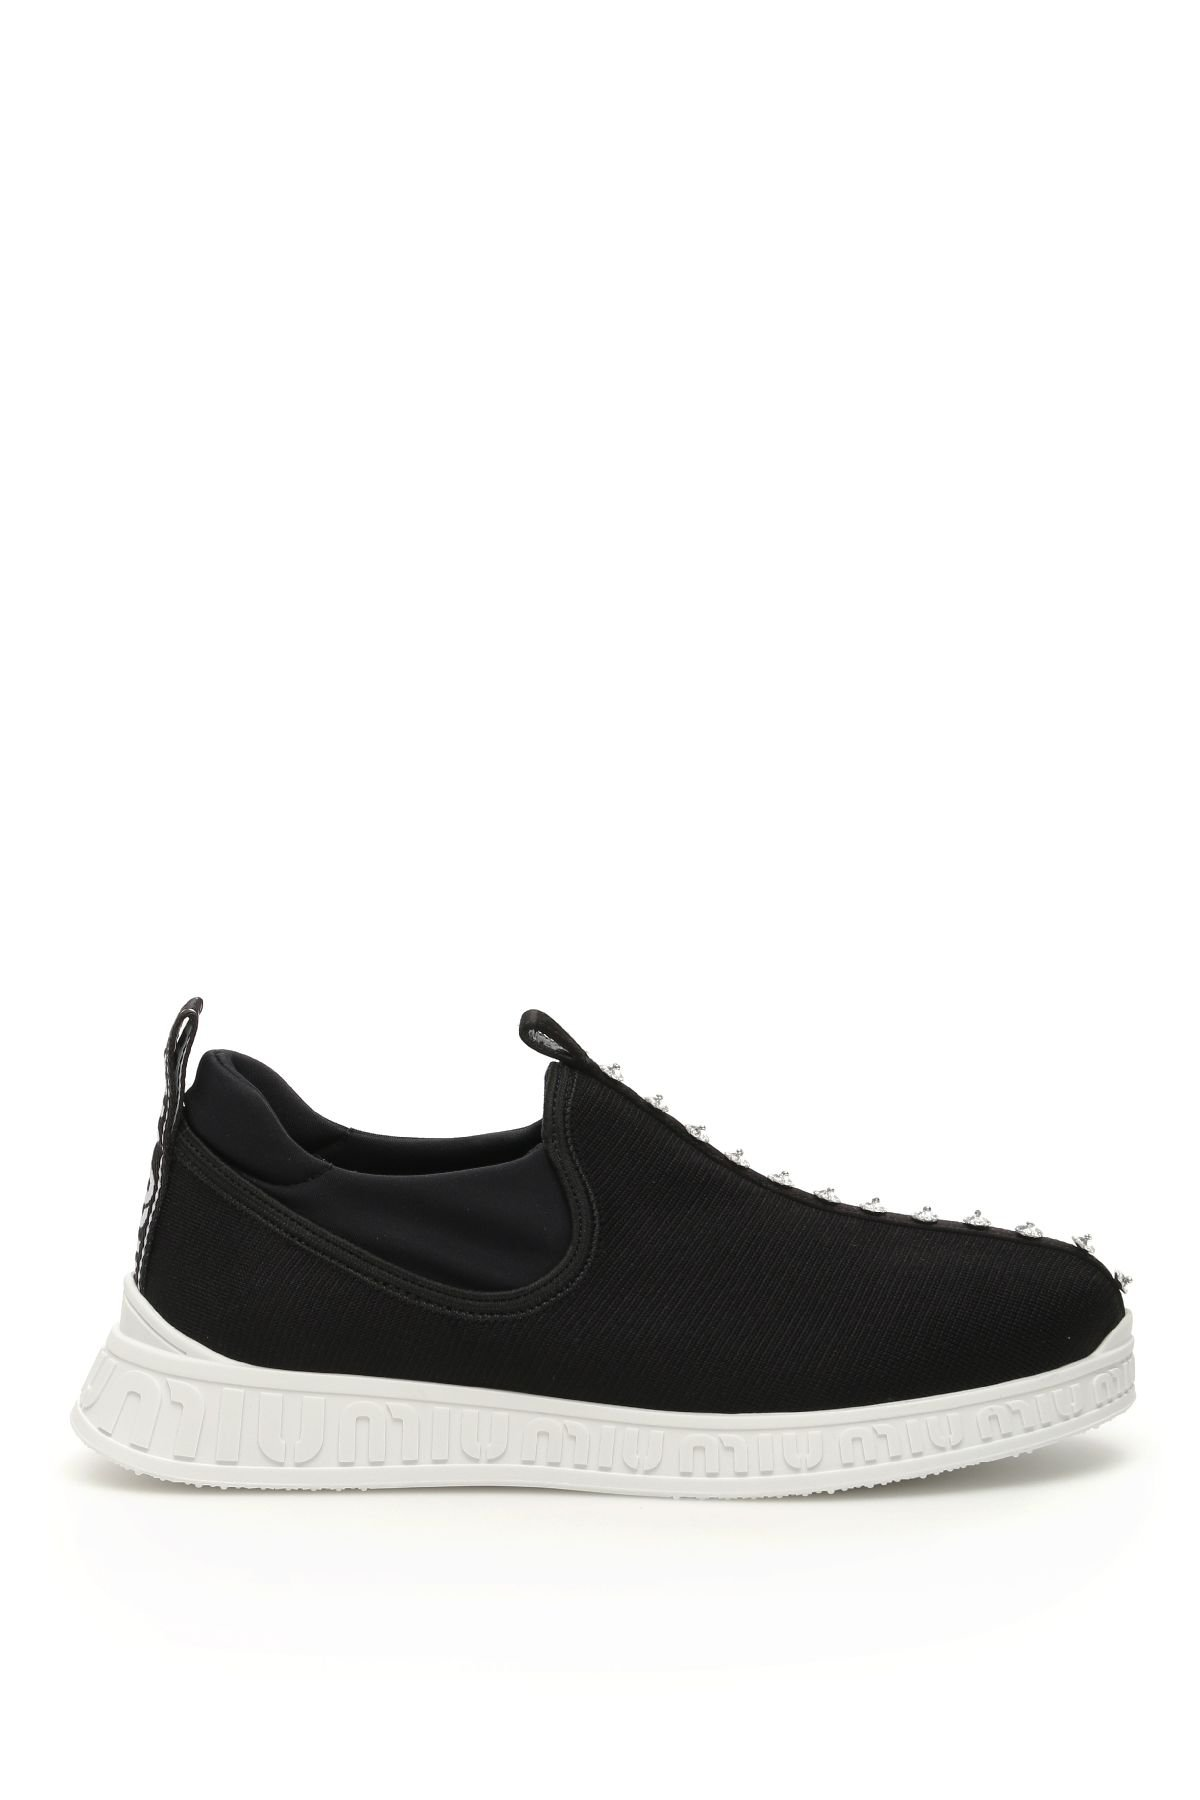 Miu Miu Crystal Stretch Knit Miu Run Sneakers